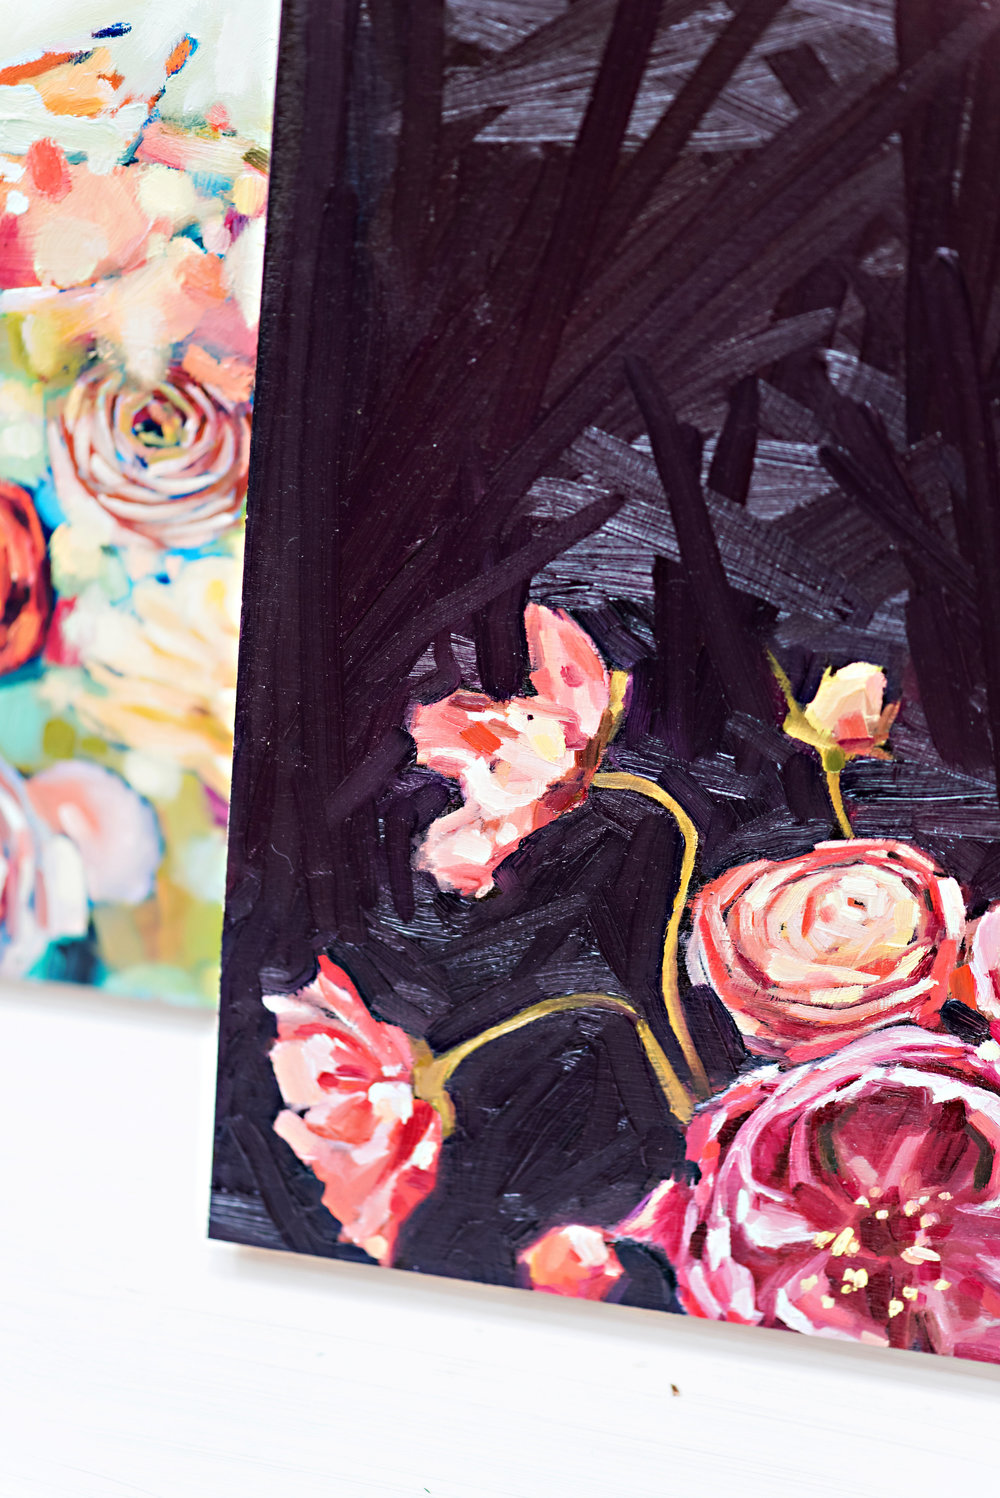 Halifax-Indie Wedding-Social-melissa-townsend-art-live-painting.jpg